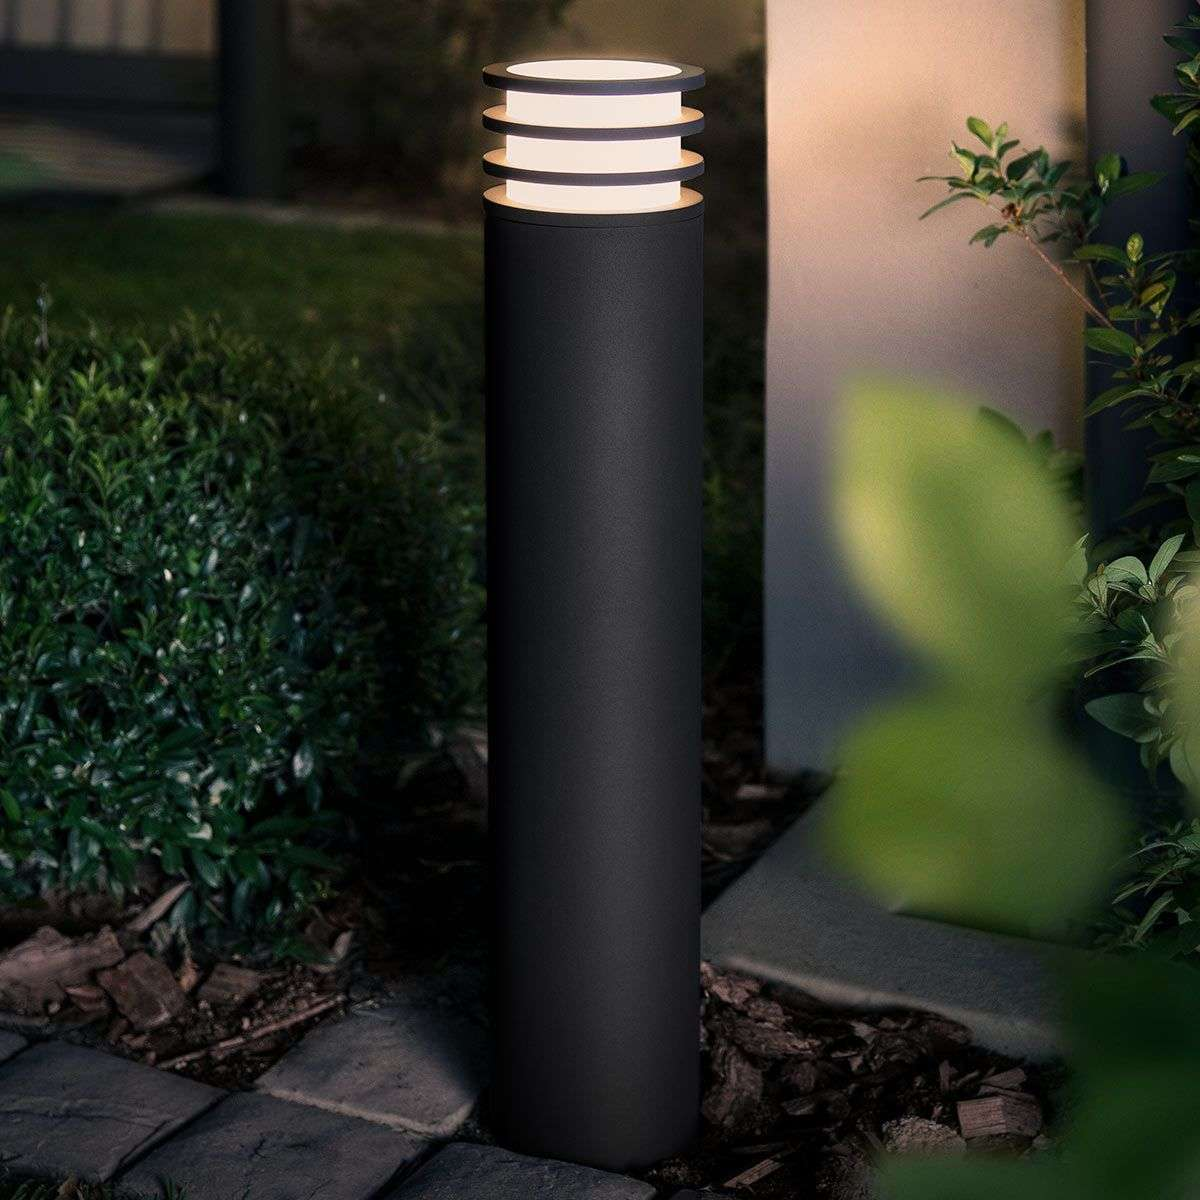 Philips Hue LED tuinpad verlichting Lucca | Lampen24.nl